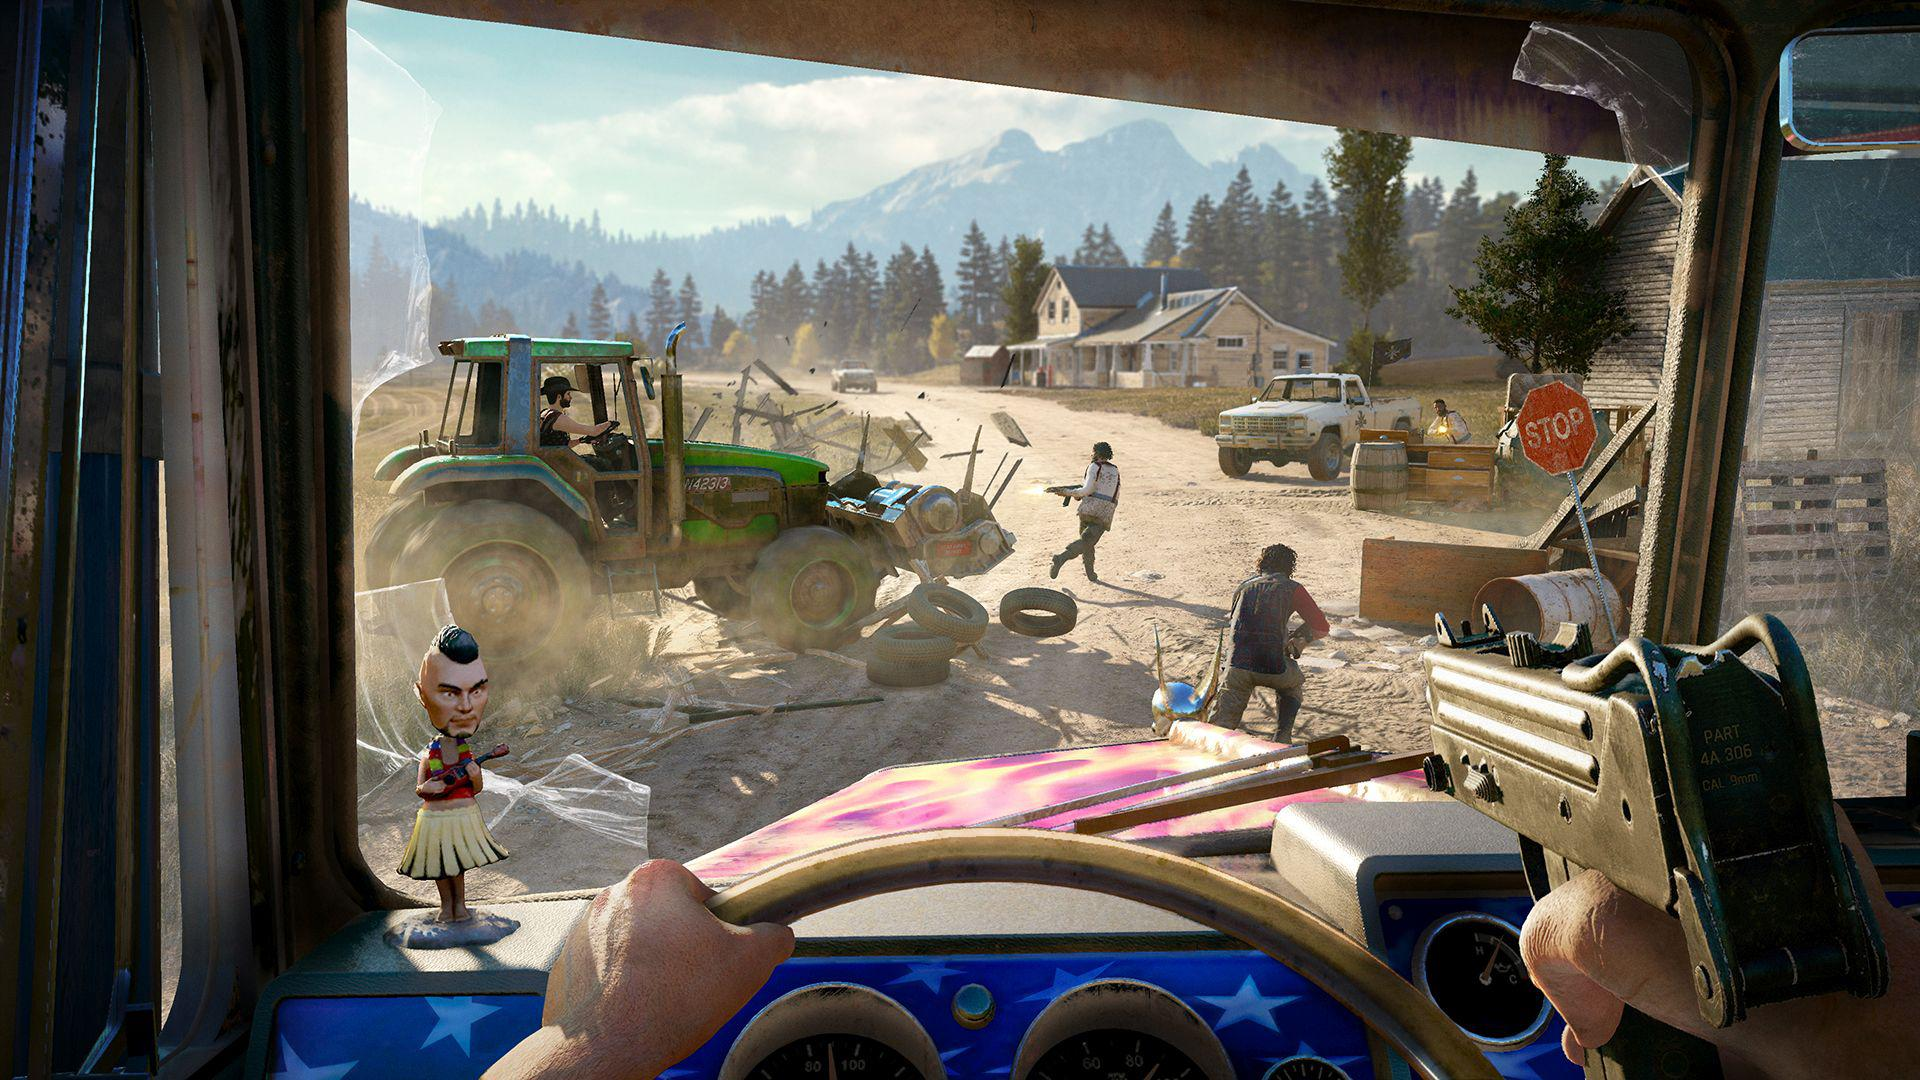 Far Cry 5 looks to have improved on the last game in every single way possible